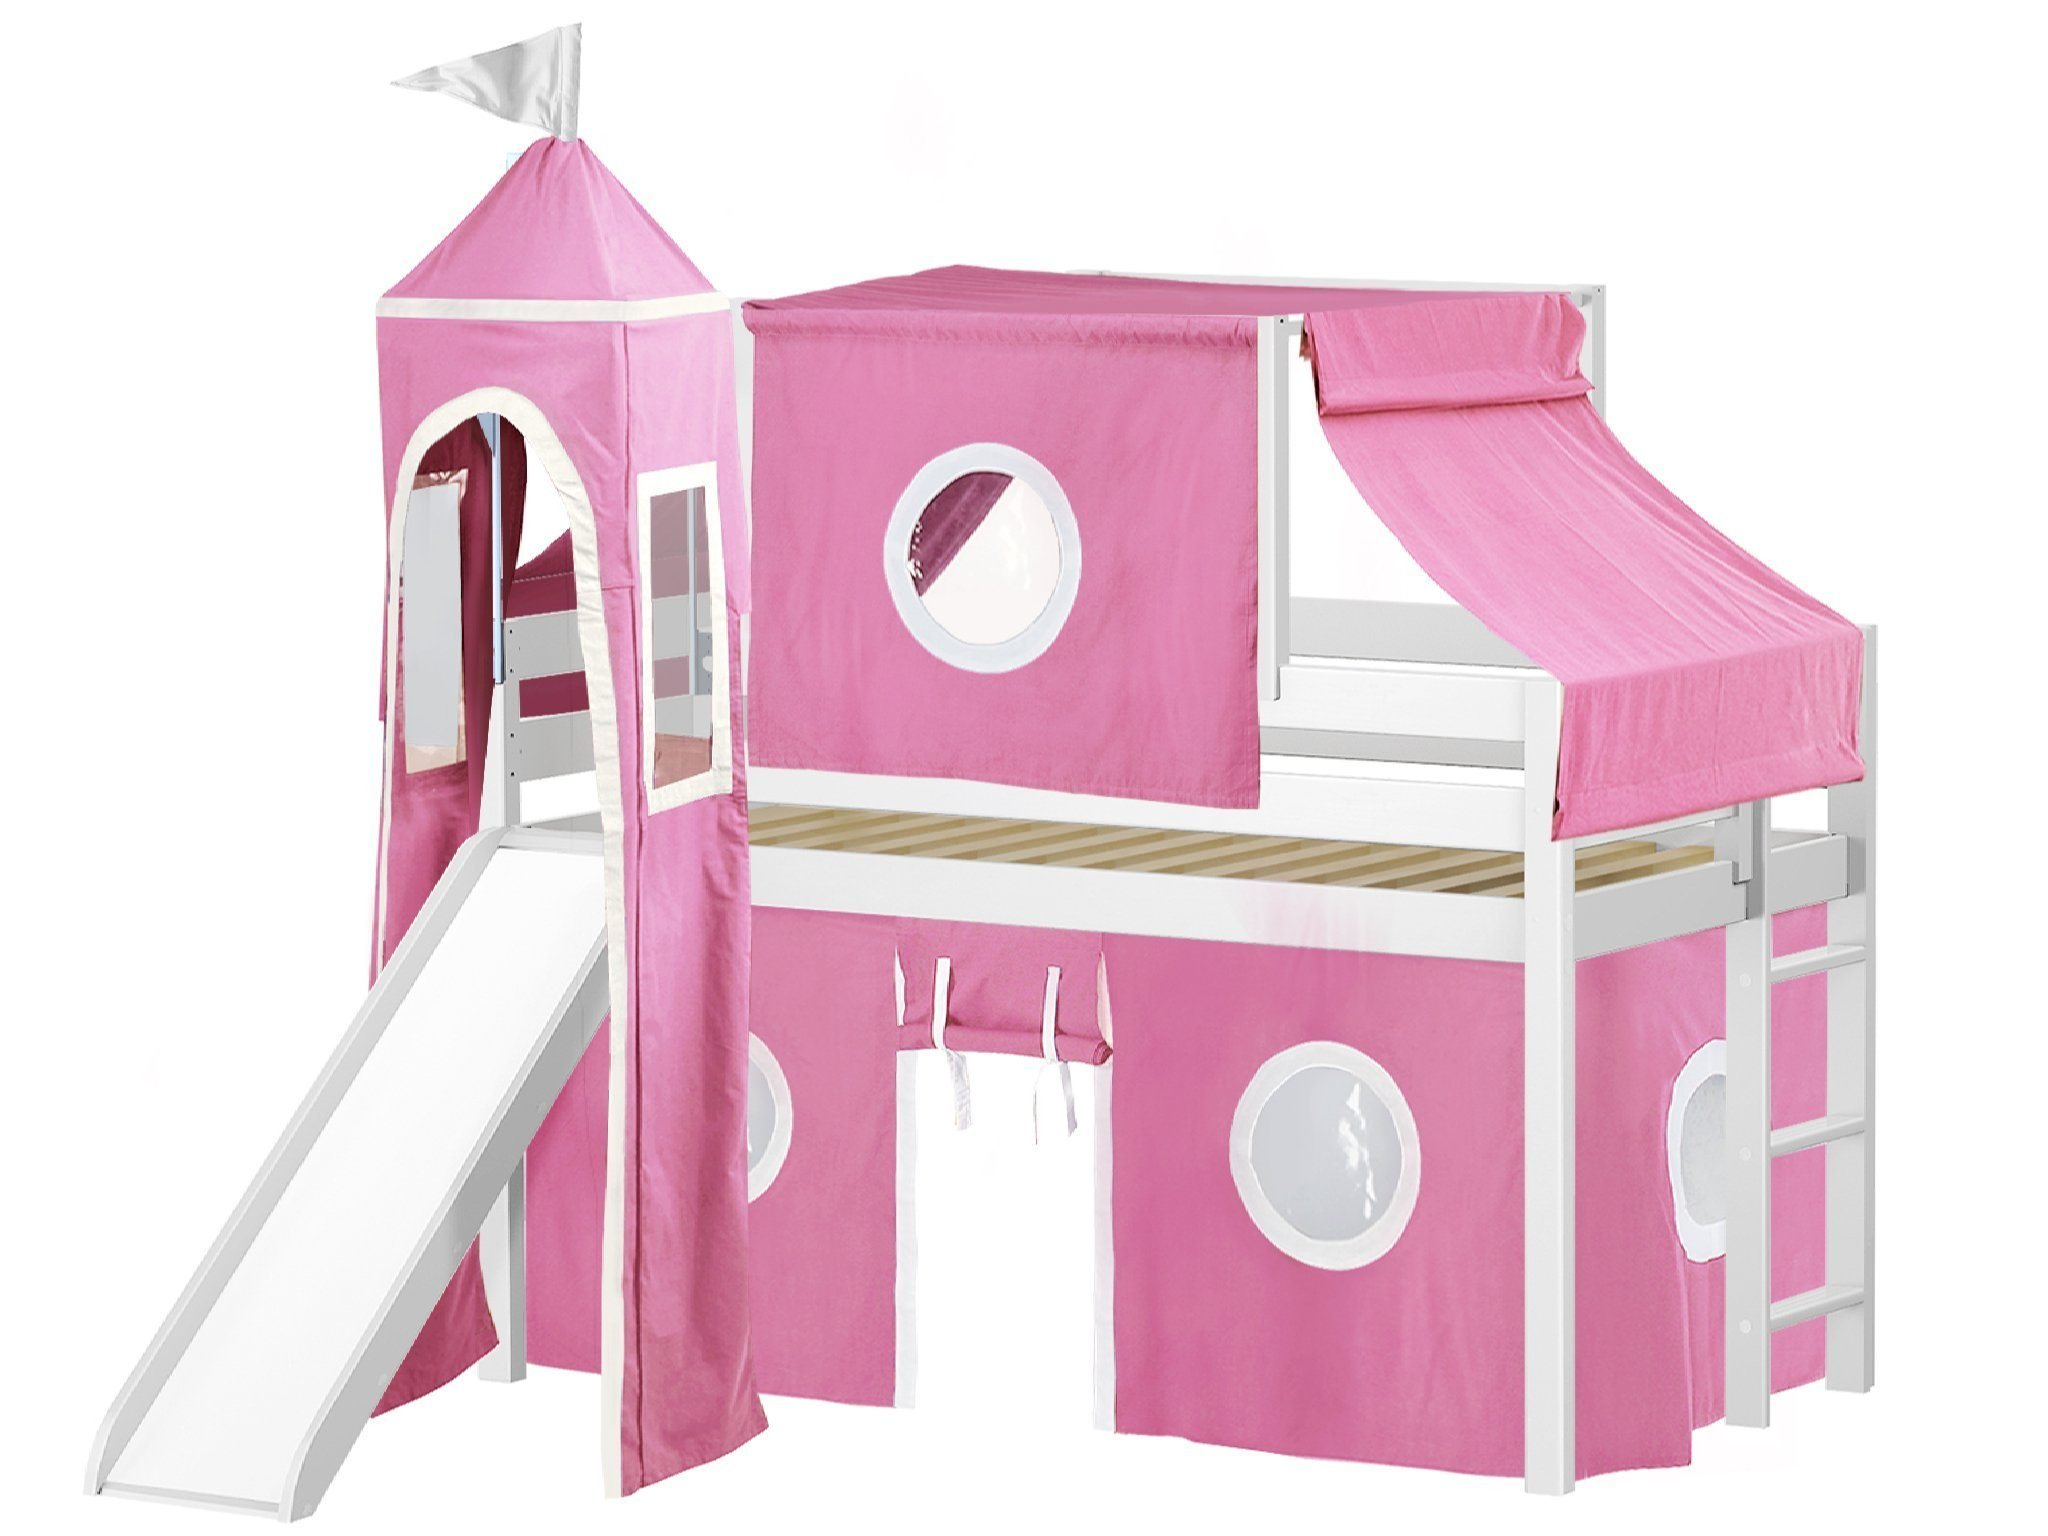 JACKPOT! Princess Low Loft Bed with Slide Pink & White Tent and Tower, Loft Bed, Twin, White by JACKPOT!